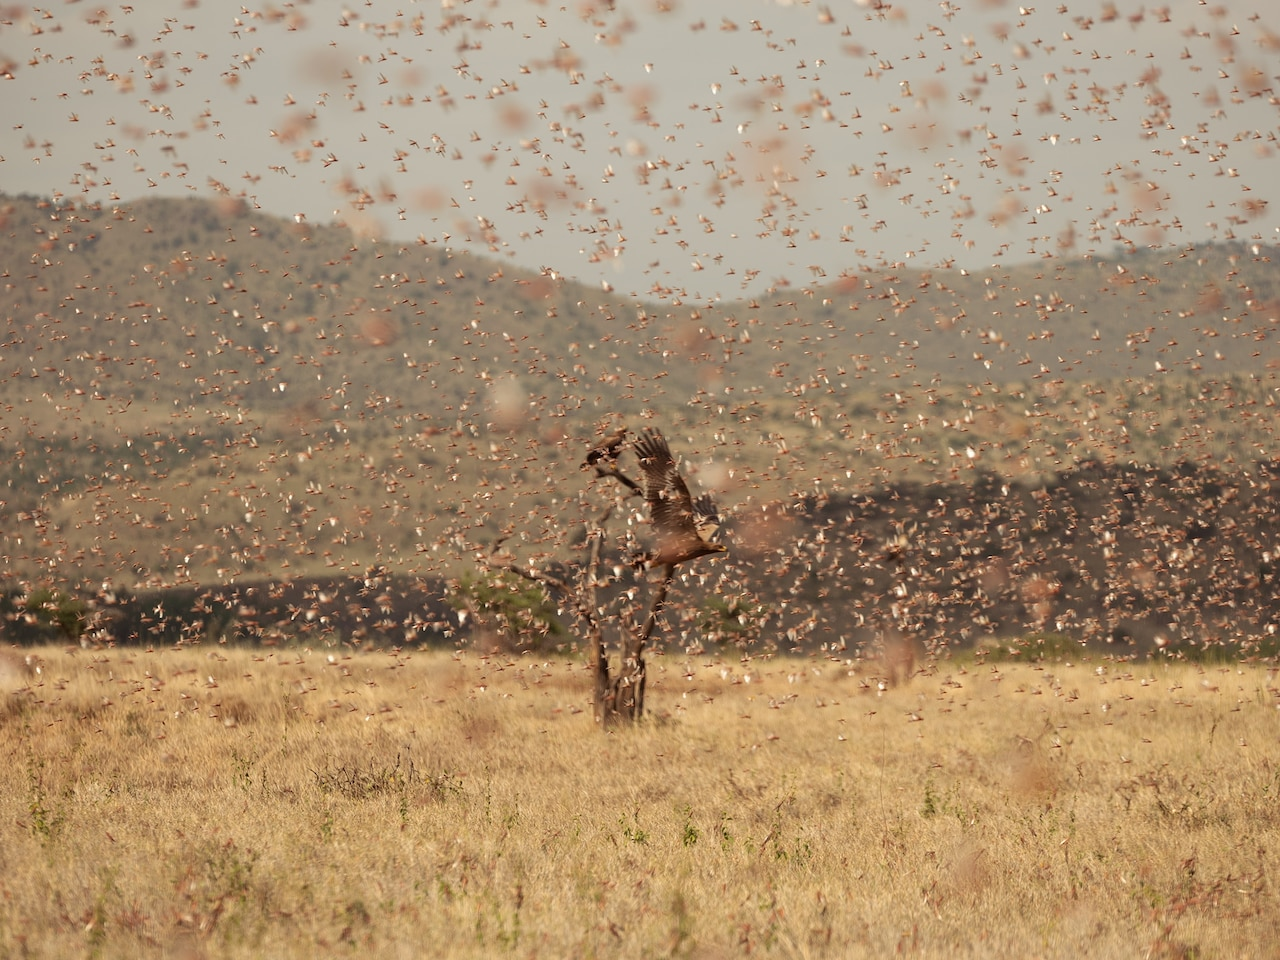 Picture of a steppe eagle flying in a locust swarm